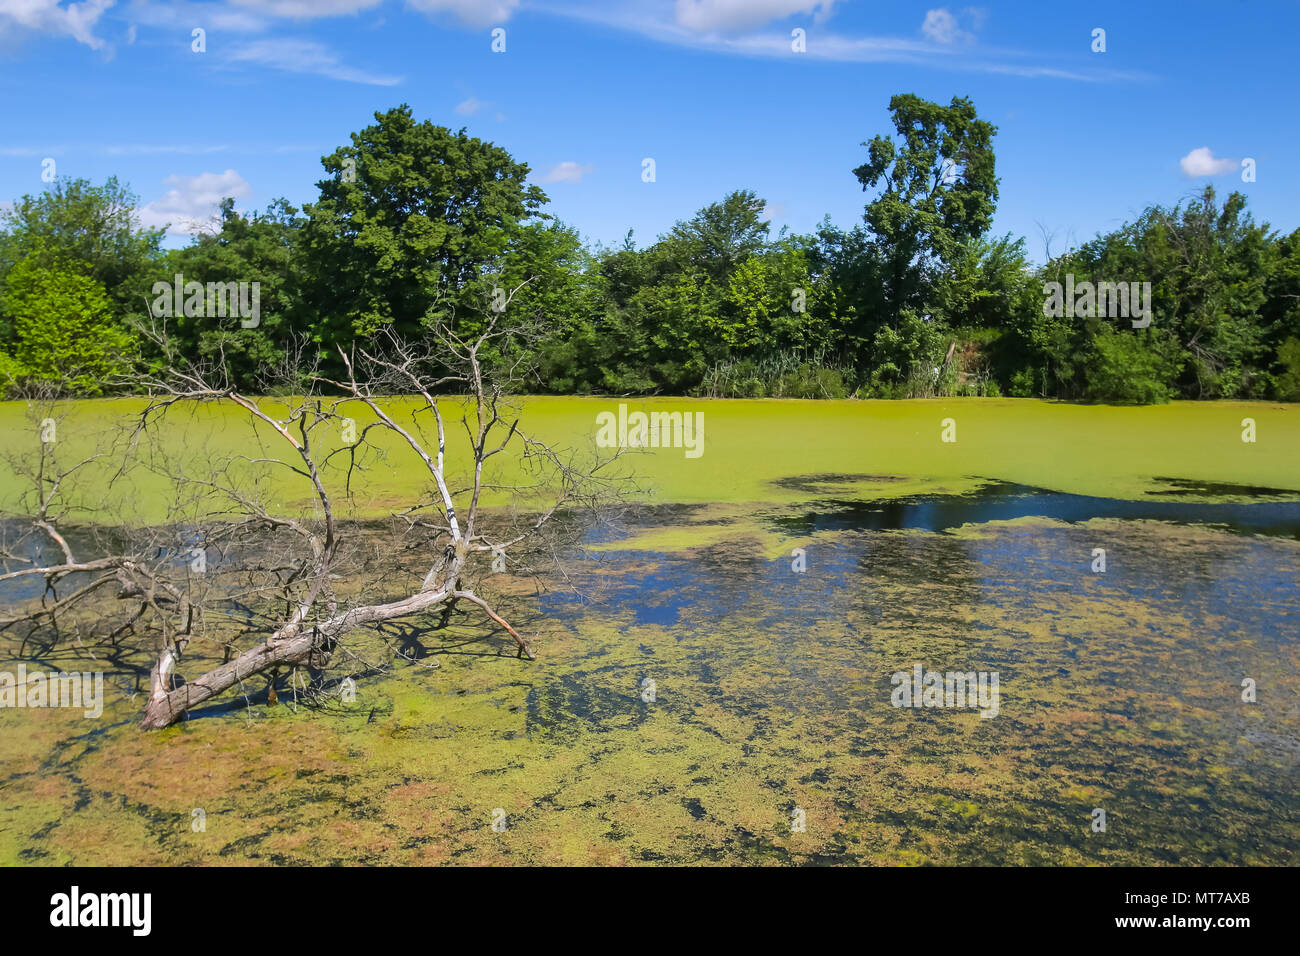 A view of a bare branchy tree in the green river Bosut covered with algal blooms in Vinkovci, Croatia. - Stock Image